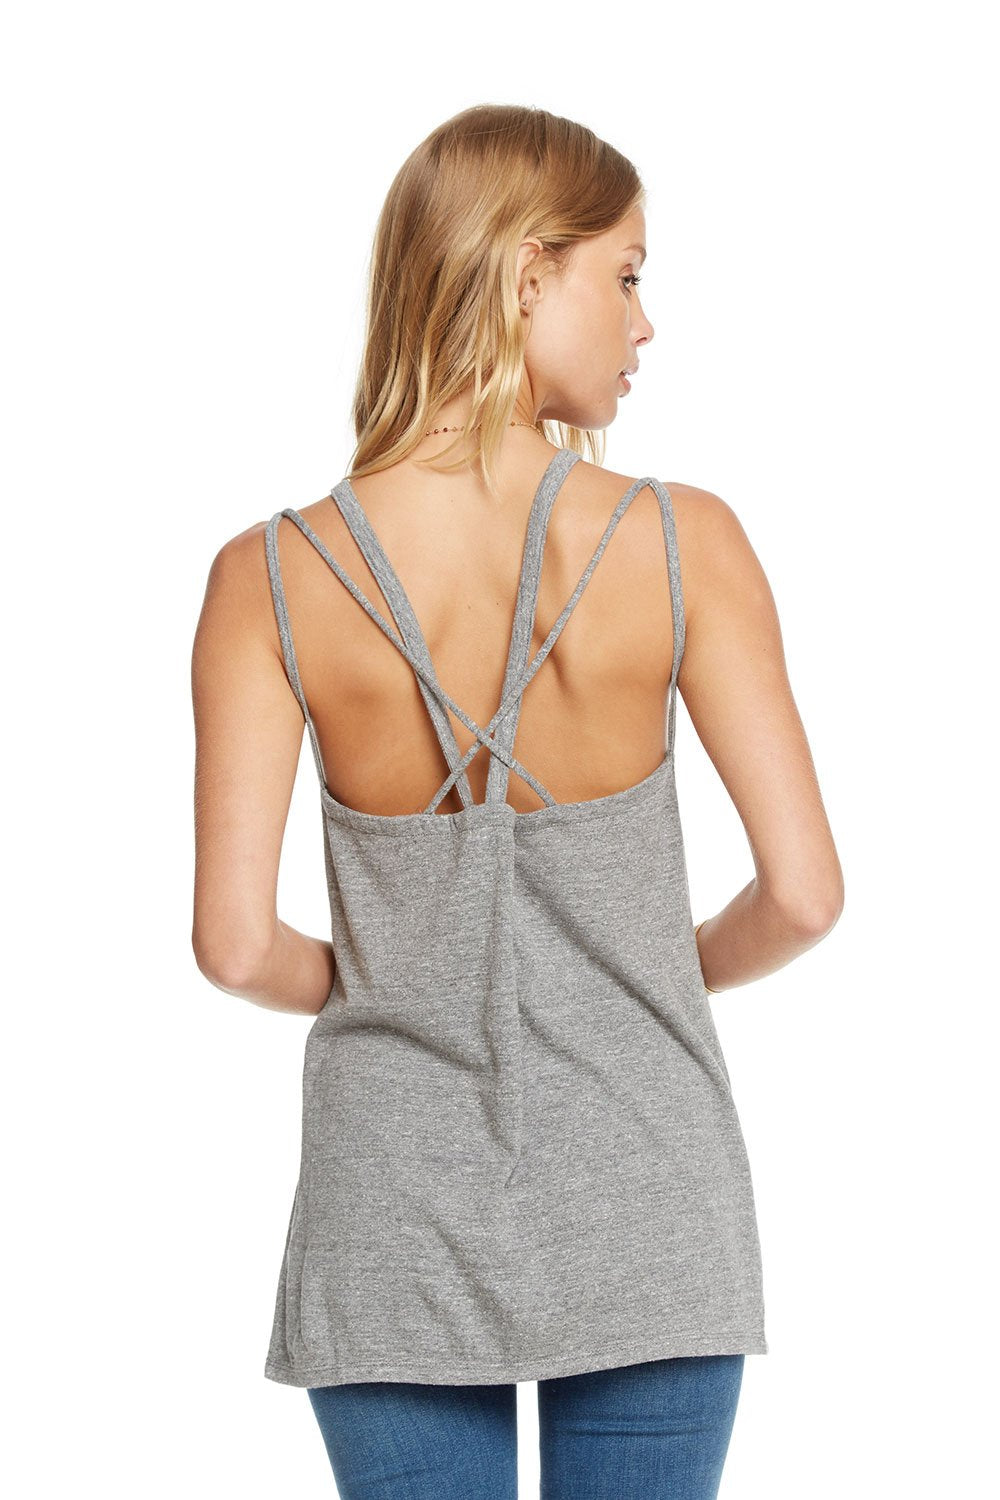 Chaser Triblend Strappy Back Cut Out Tank